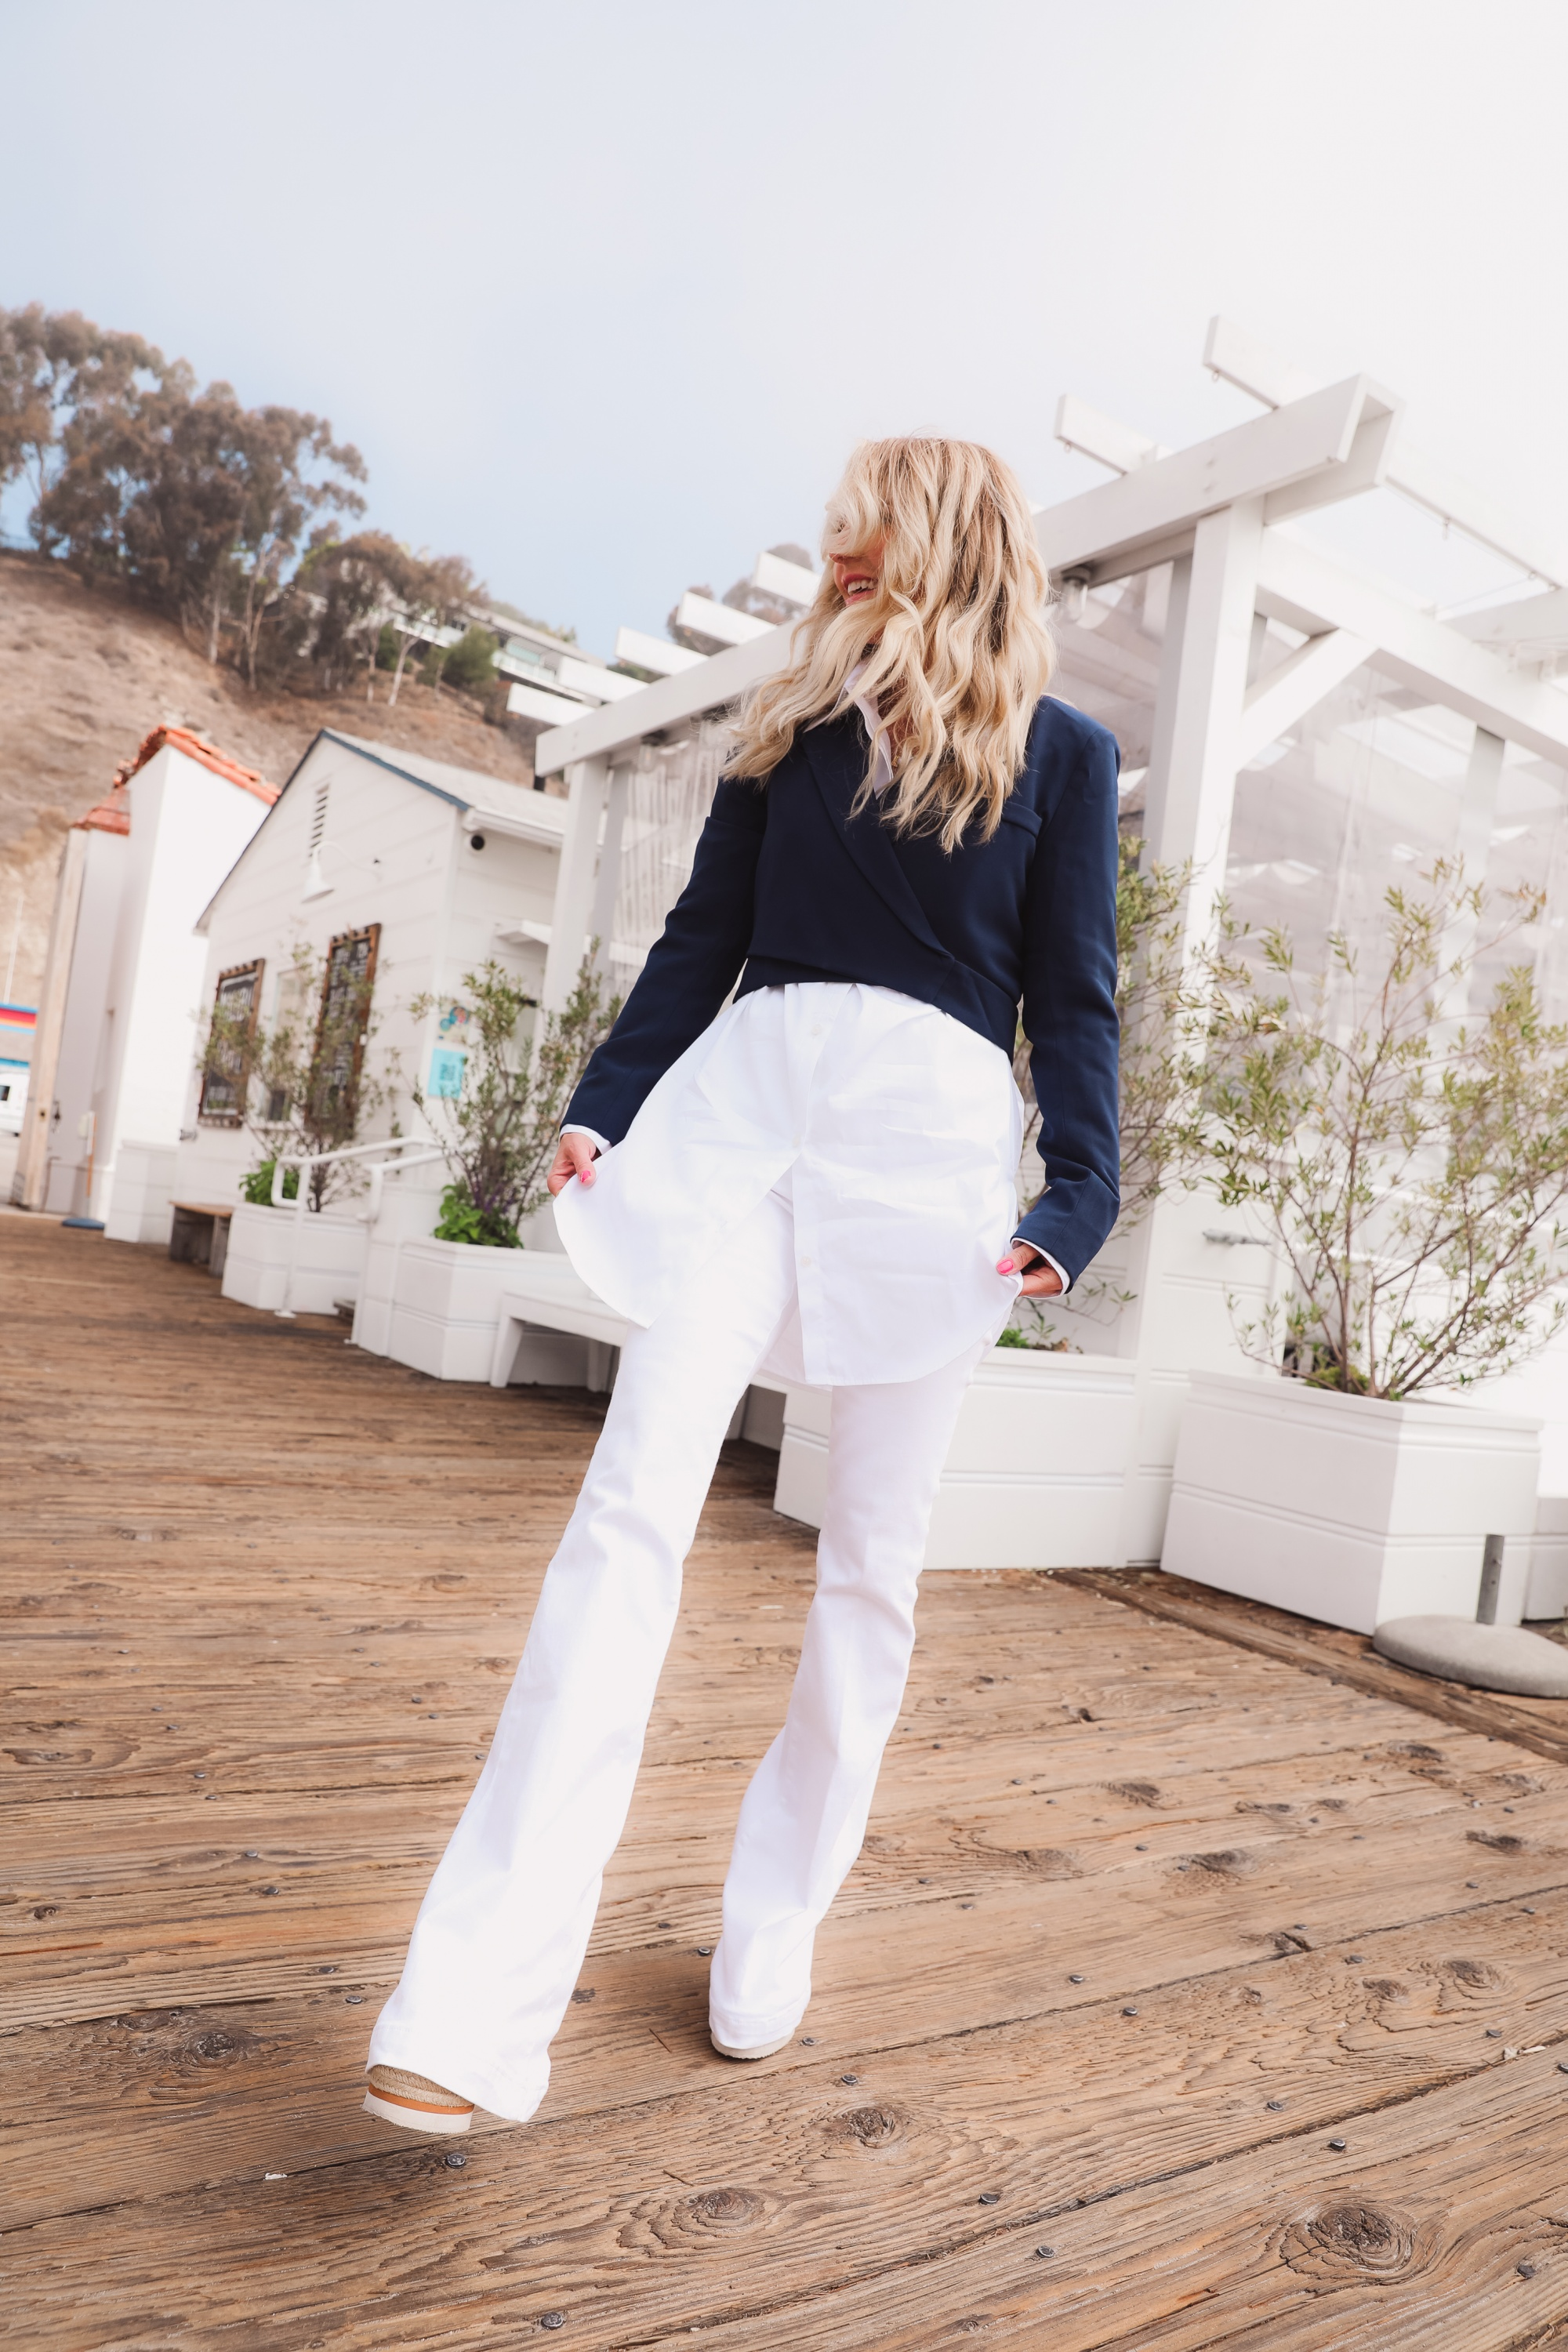 how to wear a cropped blazer, how to wear a cropped blazer over 40, how to wear cropped blazer, wear cropped blazer, navy cropped blazer, 4th & reckless cropped blazer, white open edit oversized button down, see by chloe wedges, white frame flare jeans, cropped blazer outfit, erin busbee